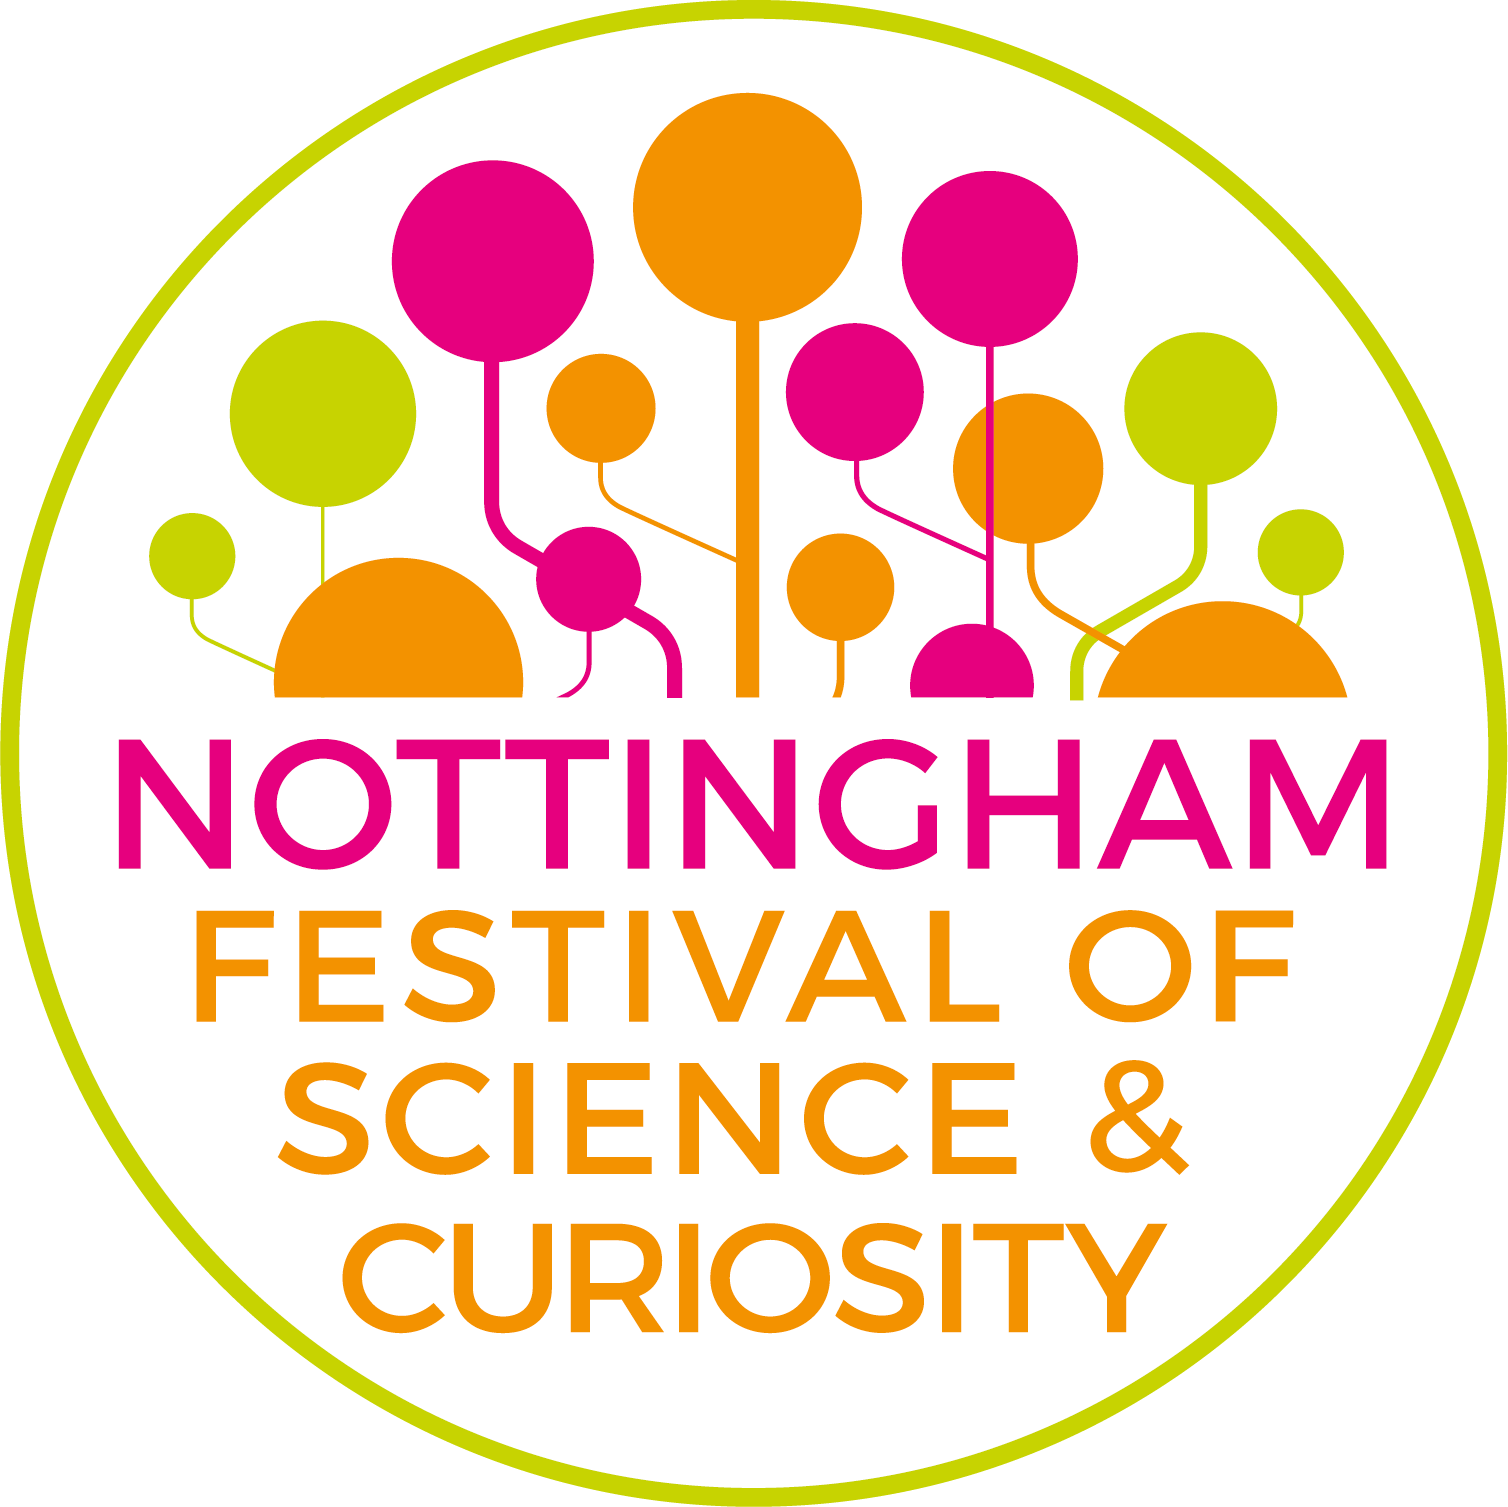 Nottingham Festival of Science and Curiosity logo